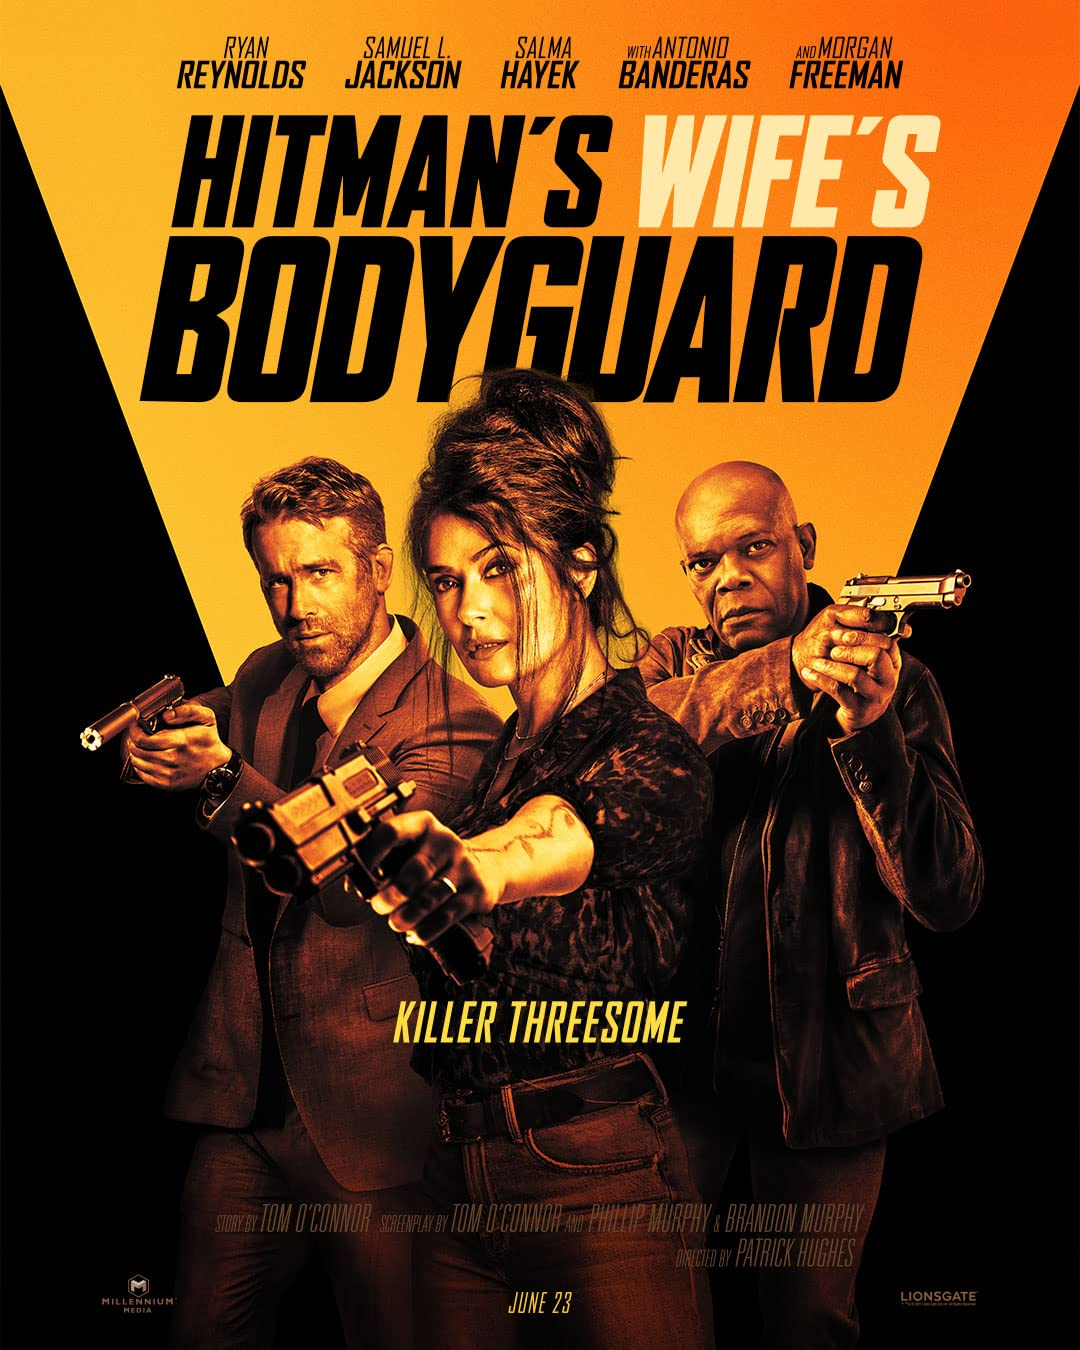 The Hitman's Wife's Bodyguard 2021 English 720p HDCAM 750MB Download